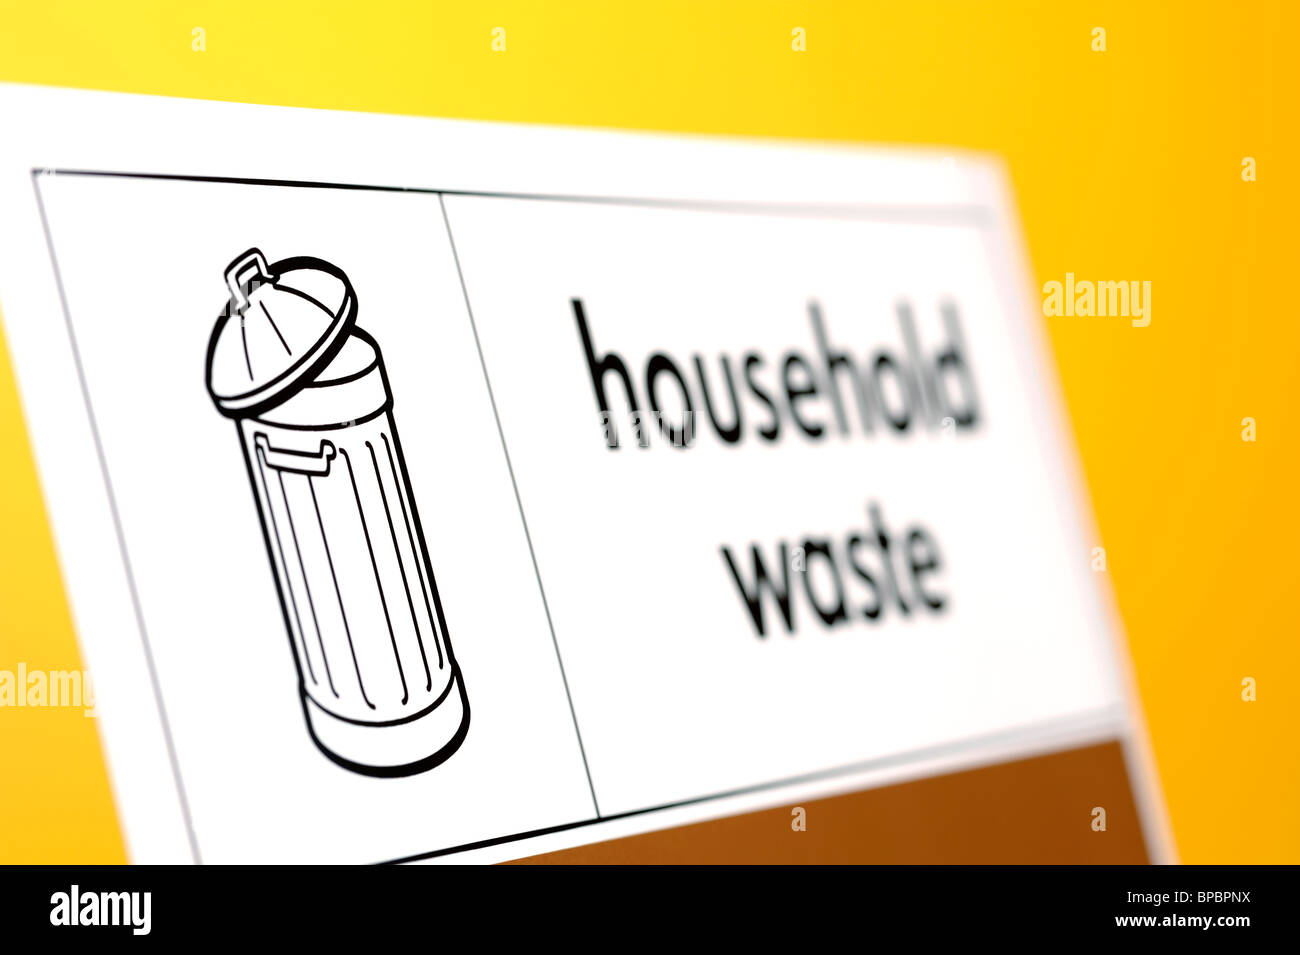 Household waste sign - Stock Image